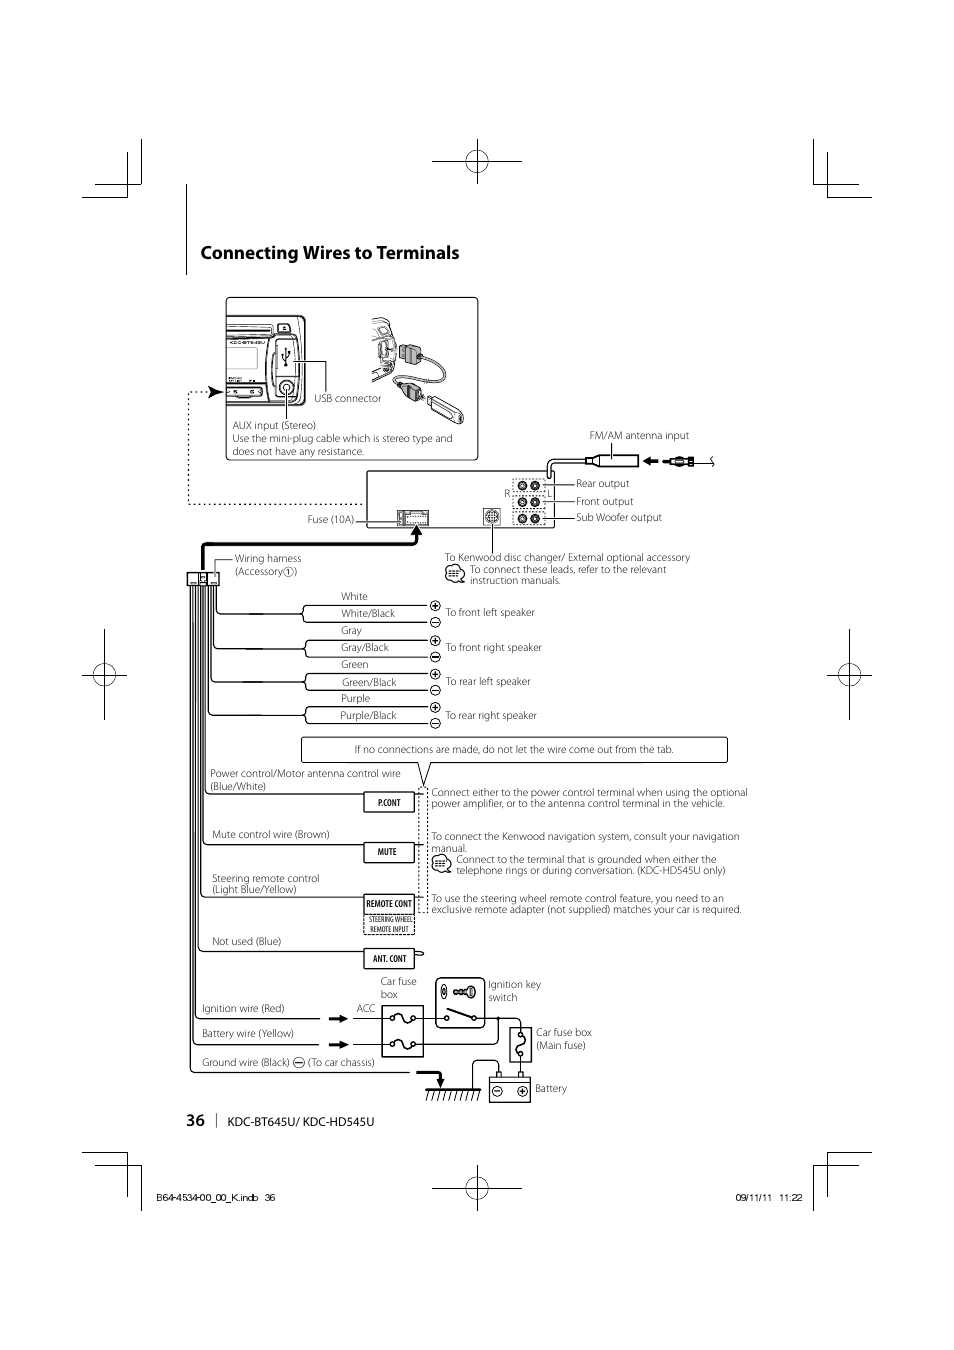 hight resolution of kenwood kdc bt645u wiring diagram on kenwood kdc 248u wiring diagram kenwood kdc bt645u wiring